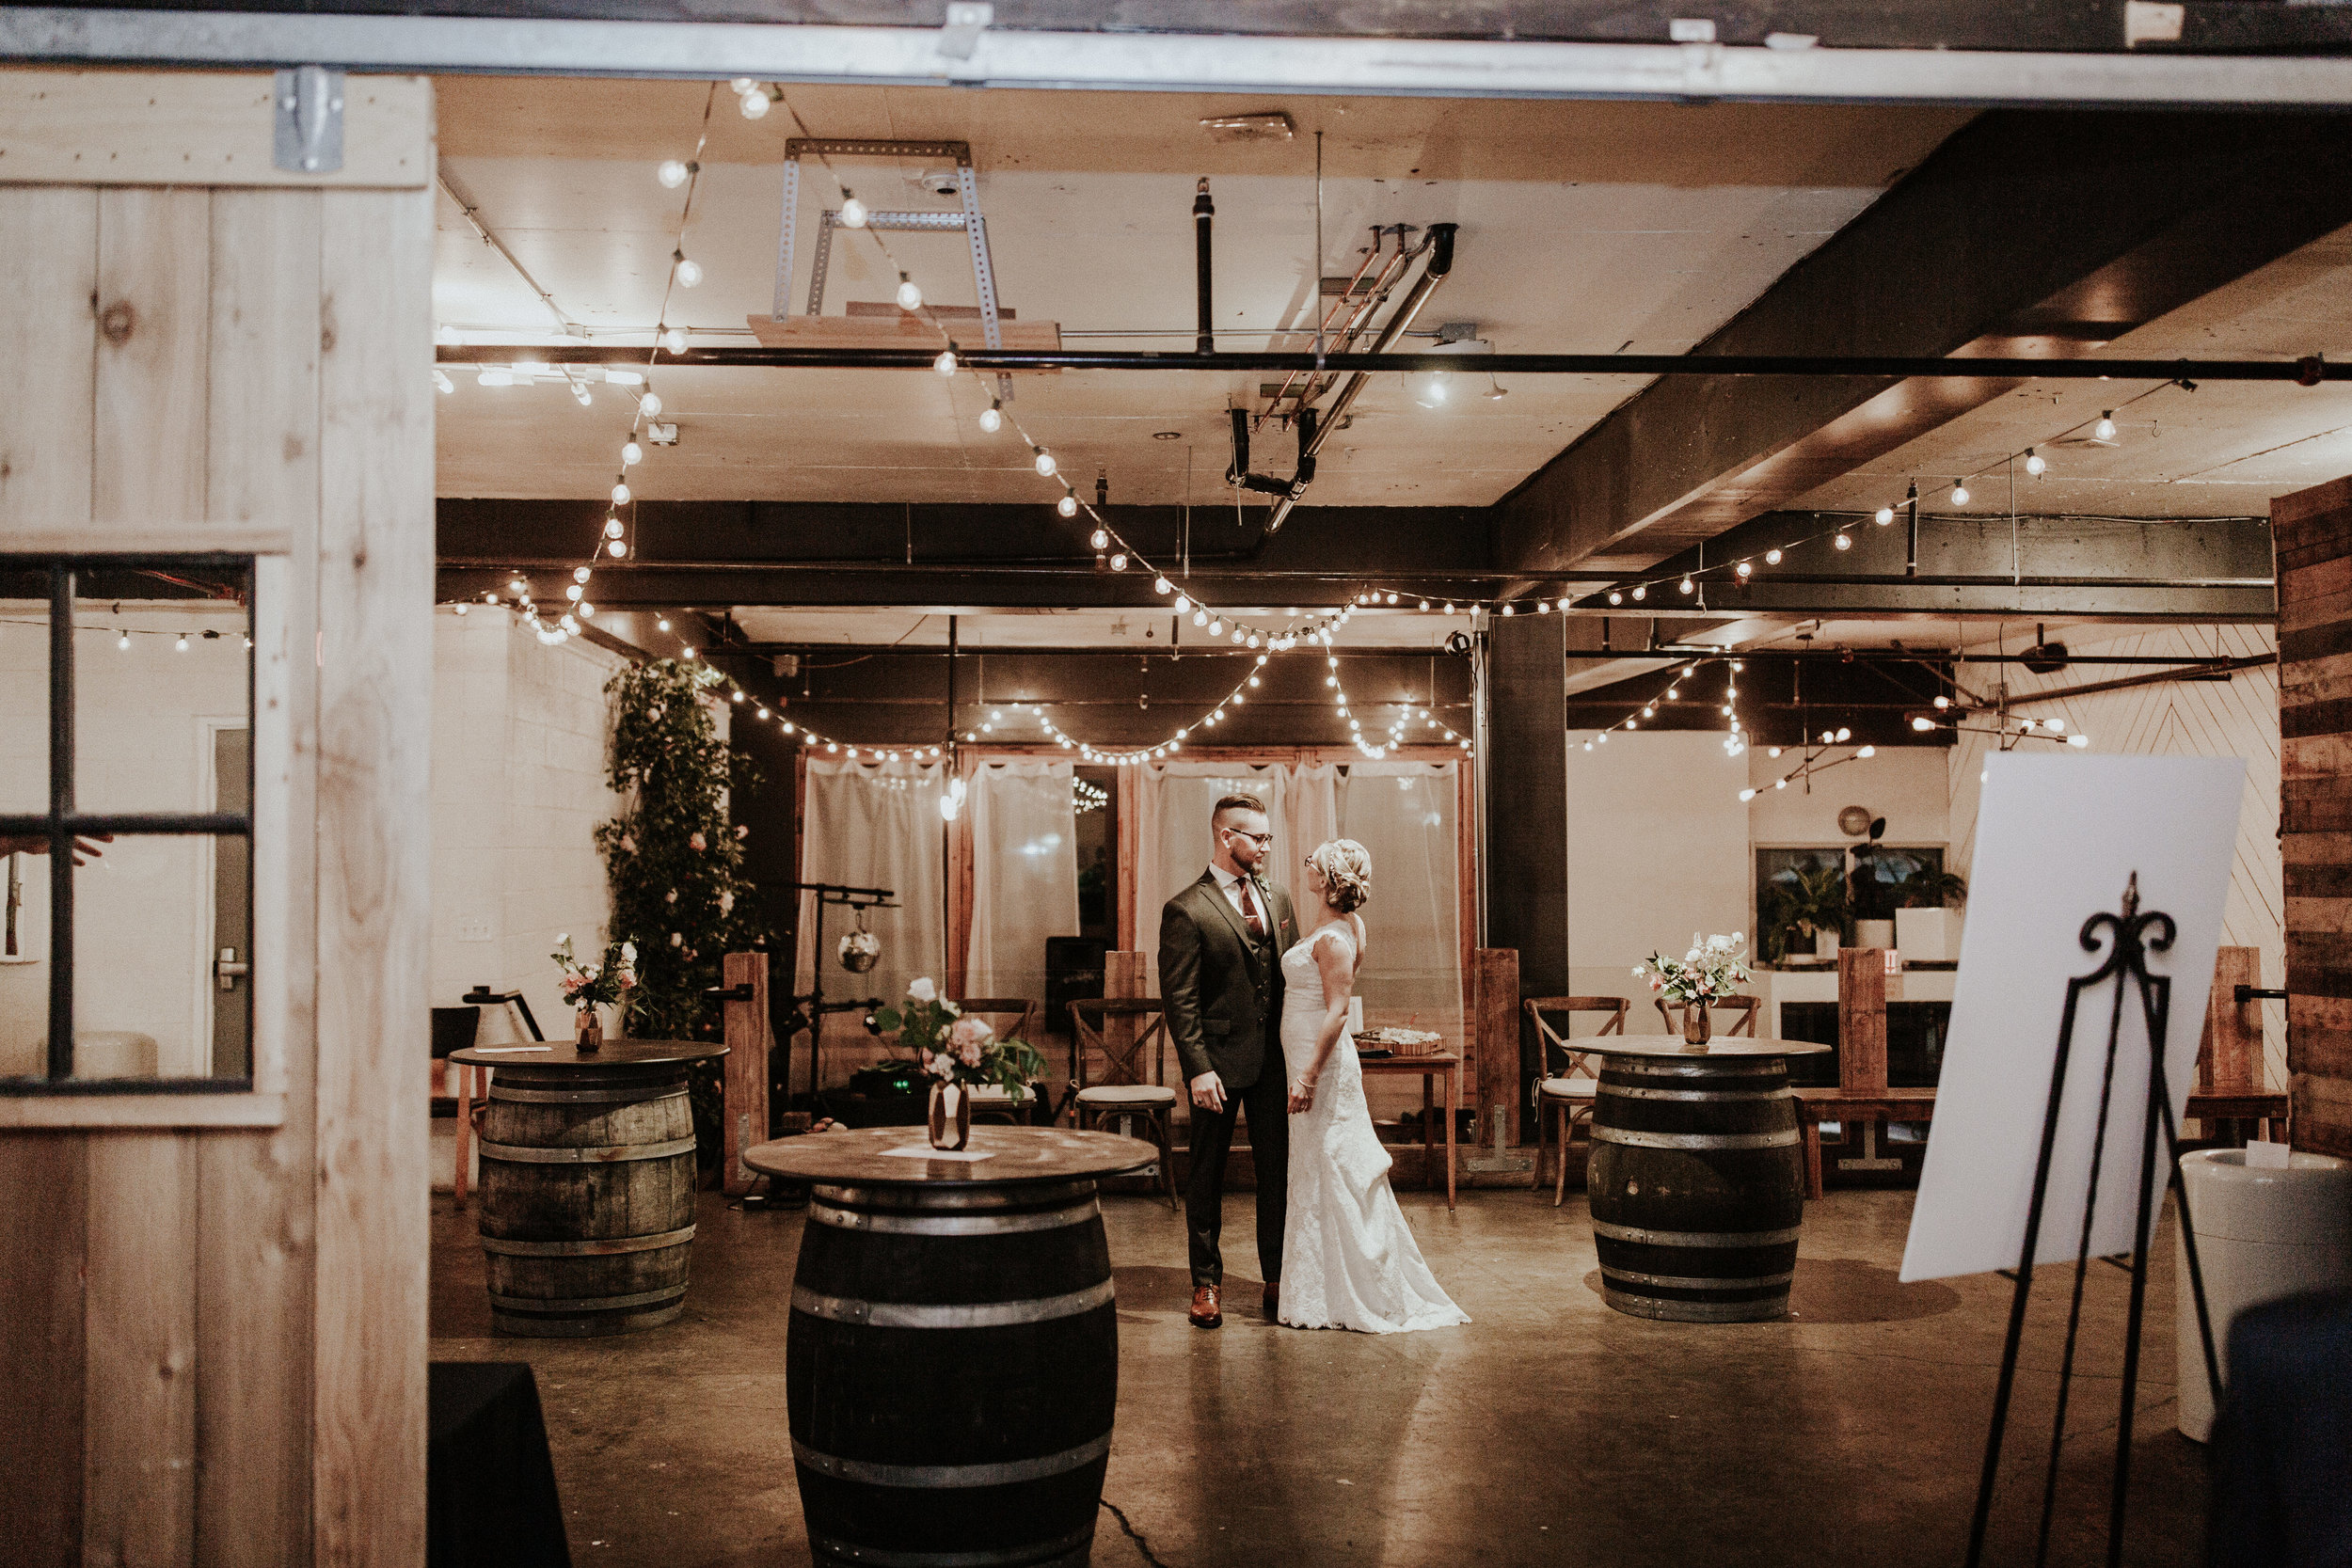 wedding-venue-portland-27.JPG